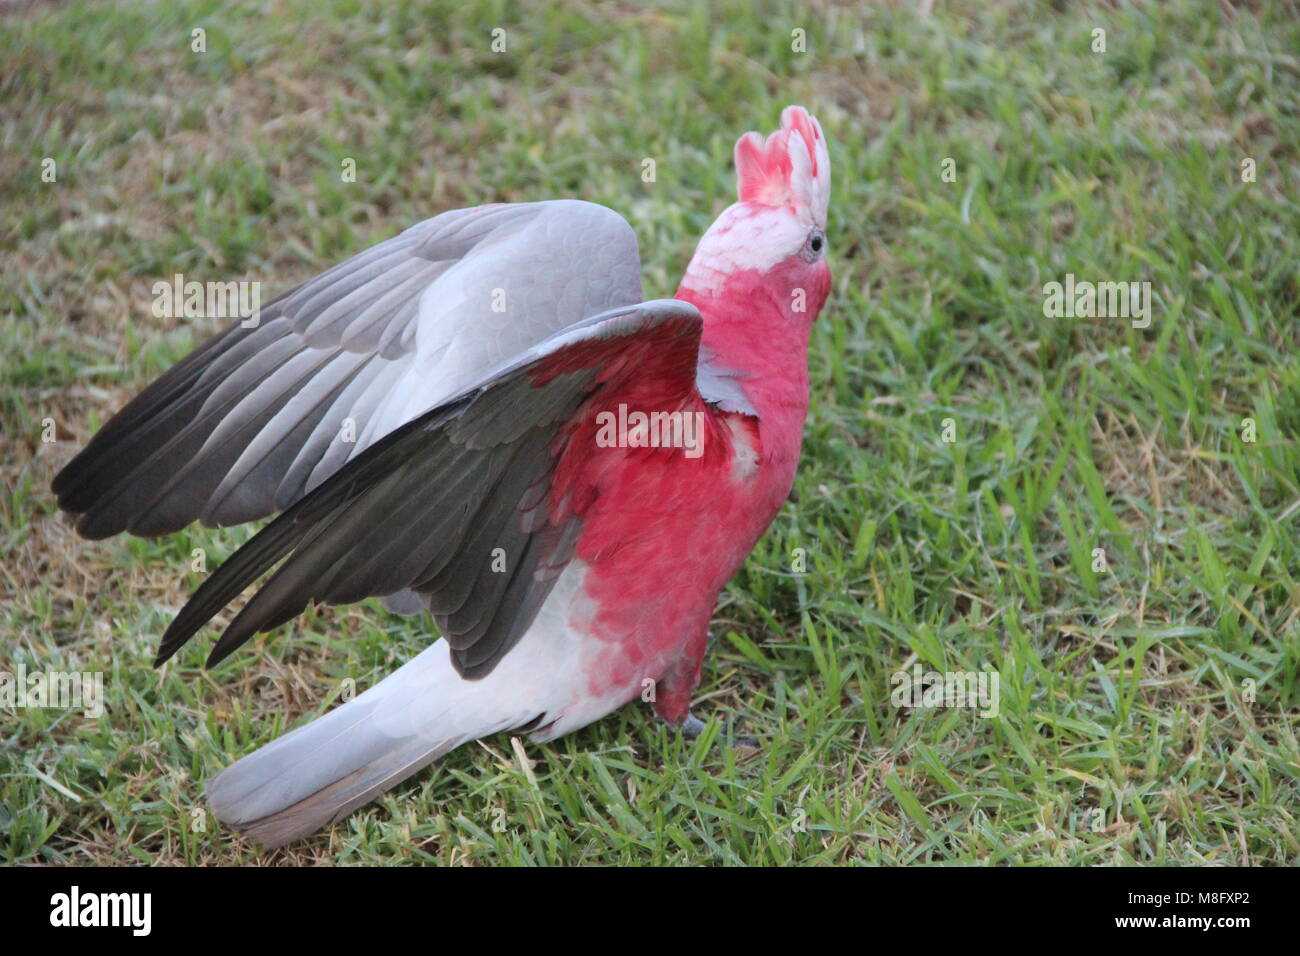 Galah Bird Outstretched Wings - Stock Image